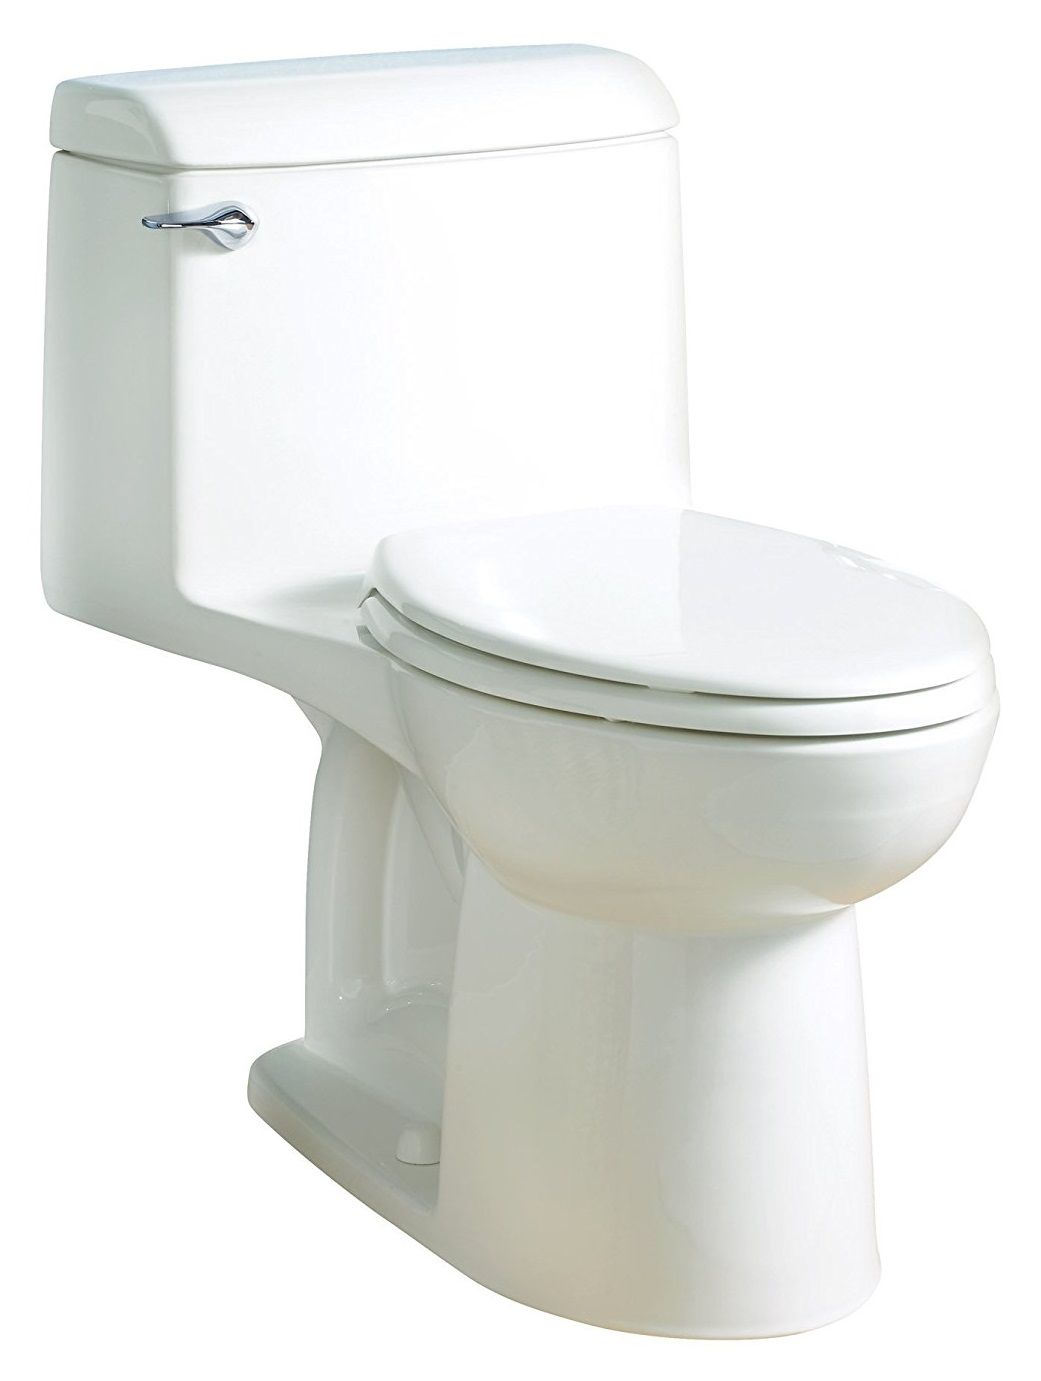 American Standard 2034314 020 Champion 4 Right Height One Piece Elongated Toilet One Piece Toilets American Standard Marble Vanity Tops